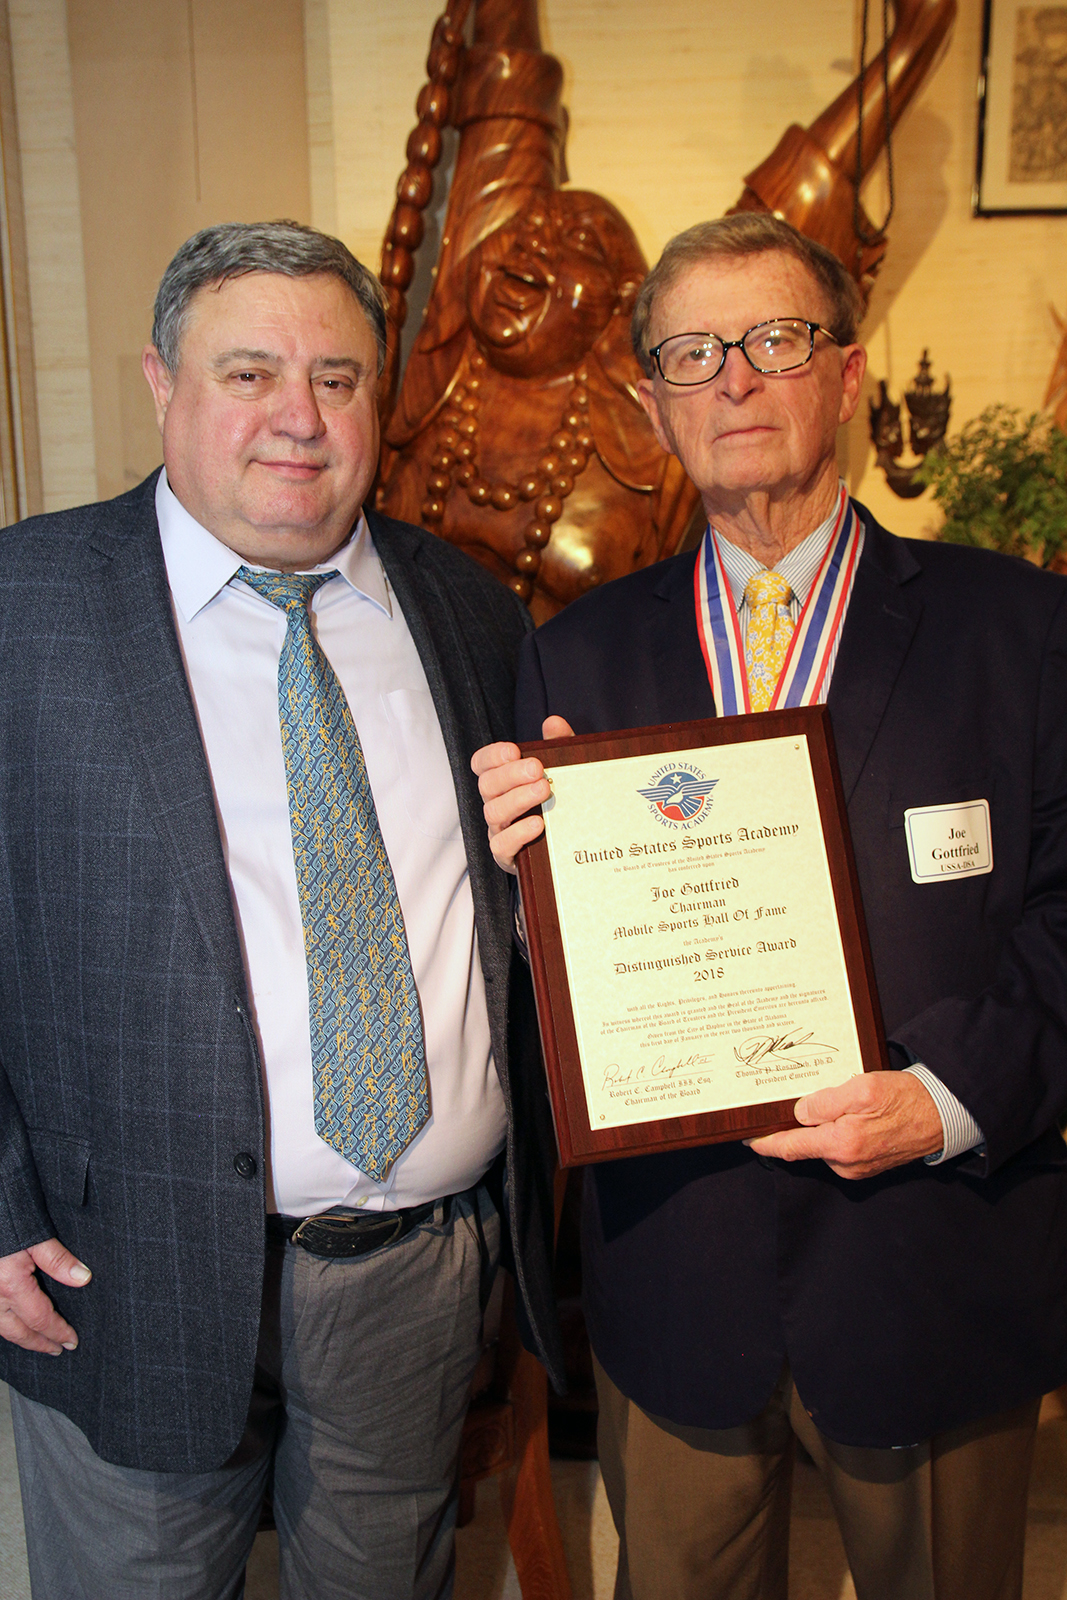 Dr. TJ Rosandich and Joe Gottfried